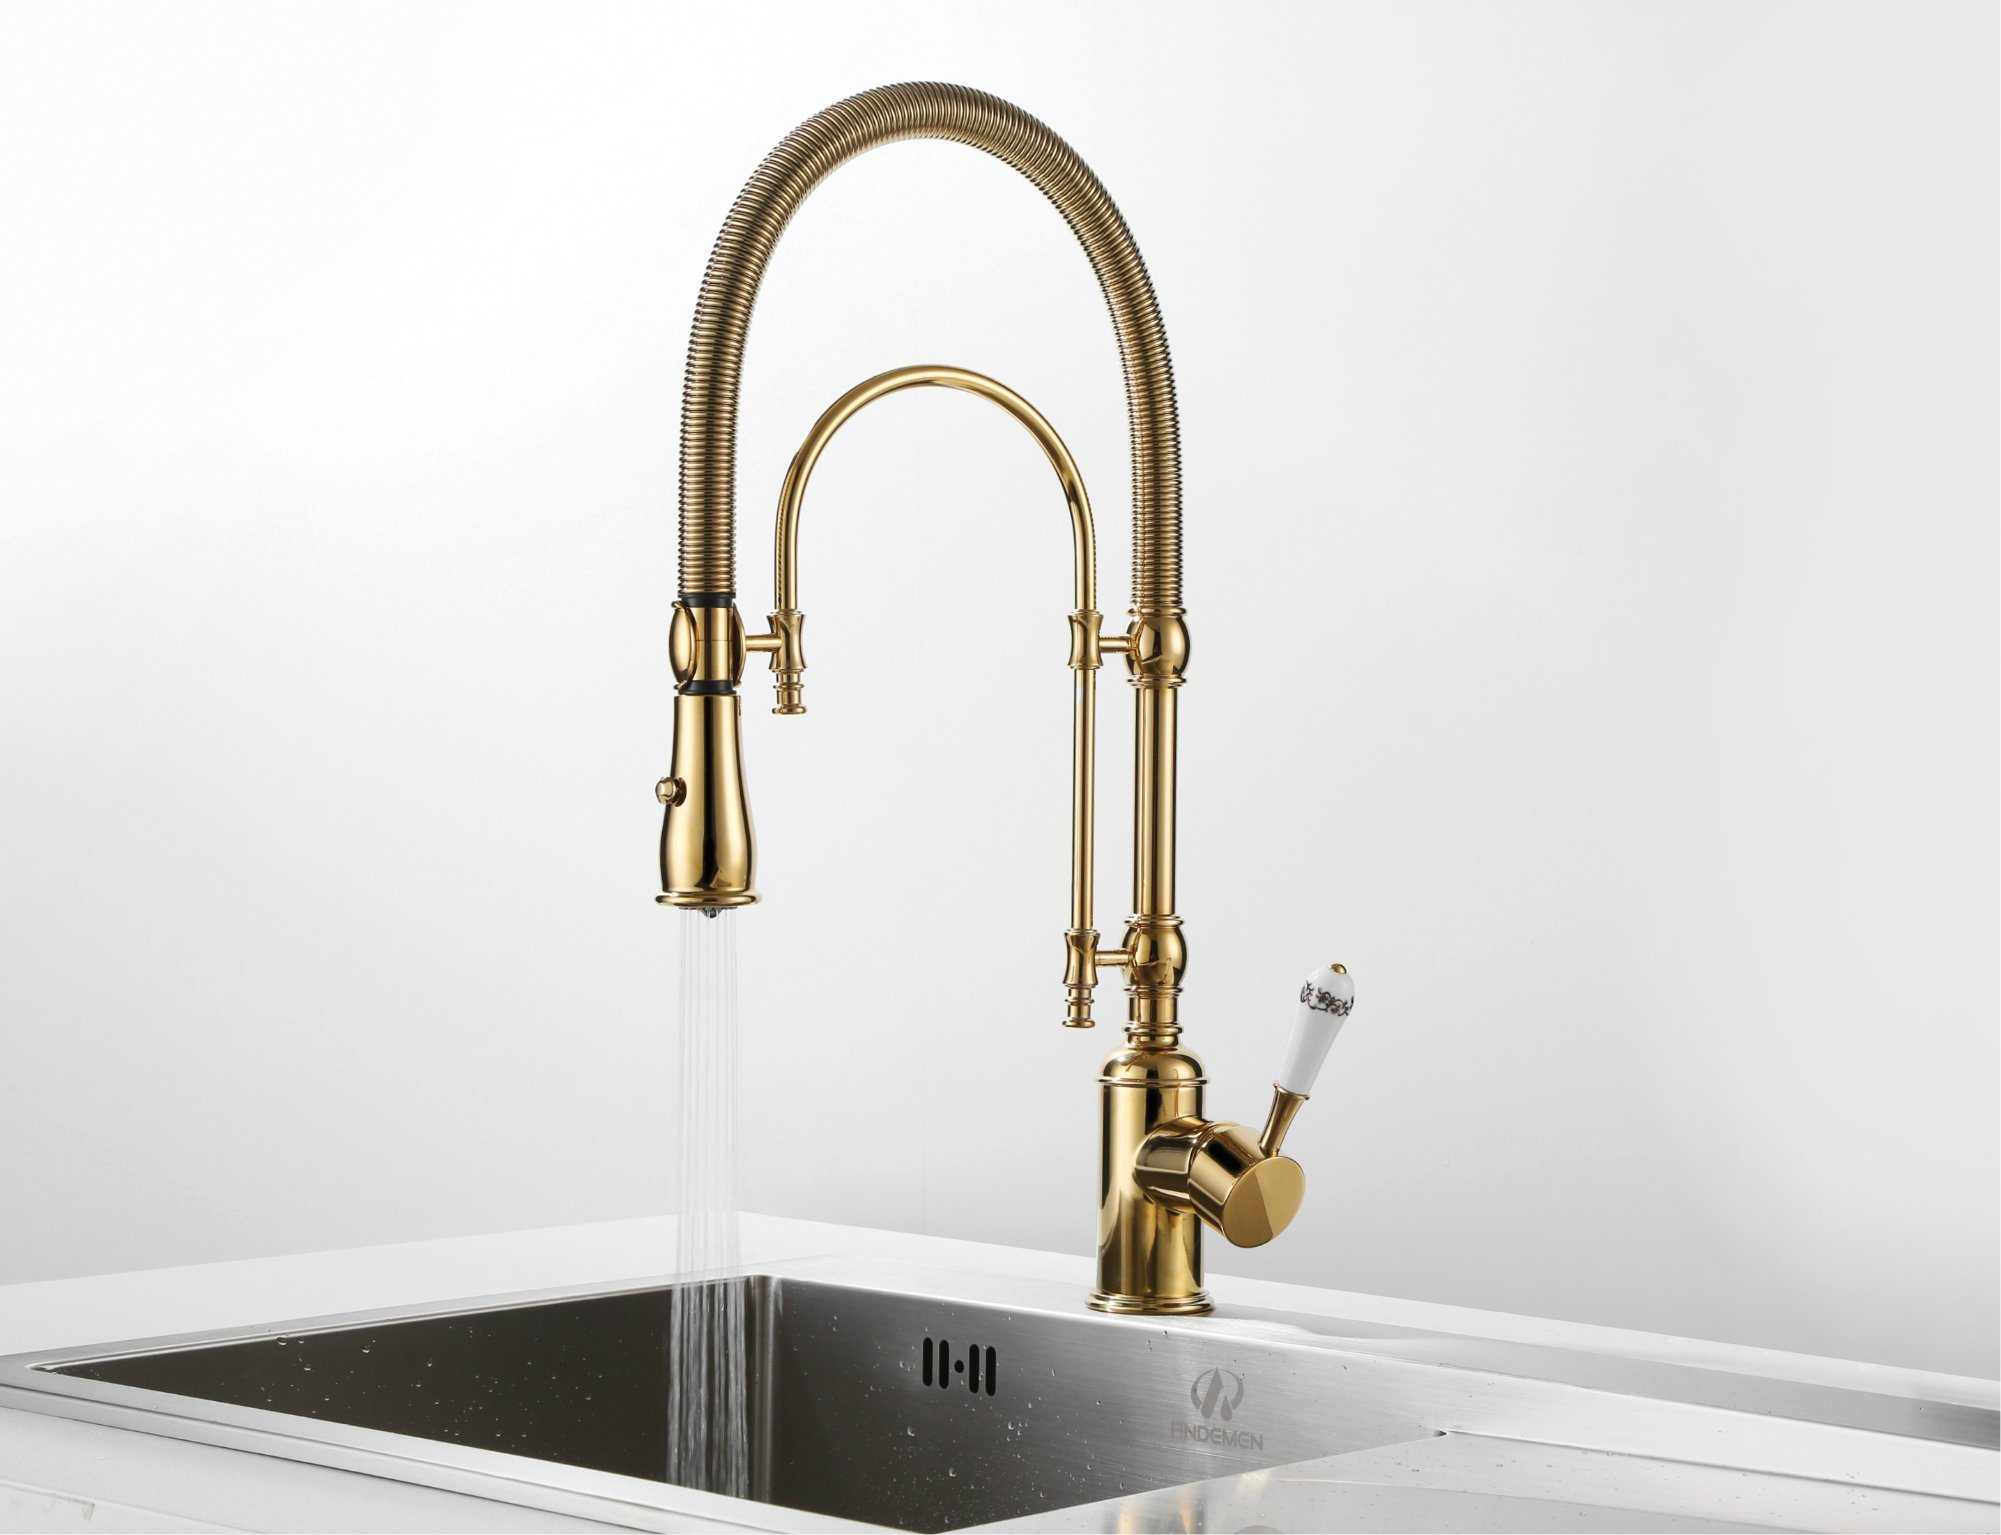 Luxury Design Good Quality Kitchen Faucet